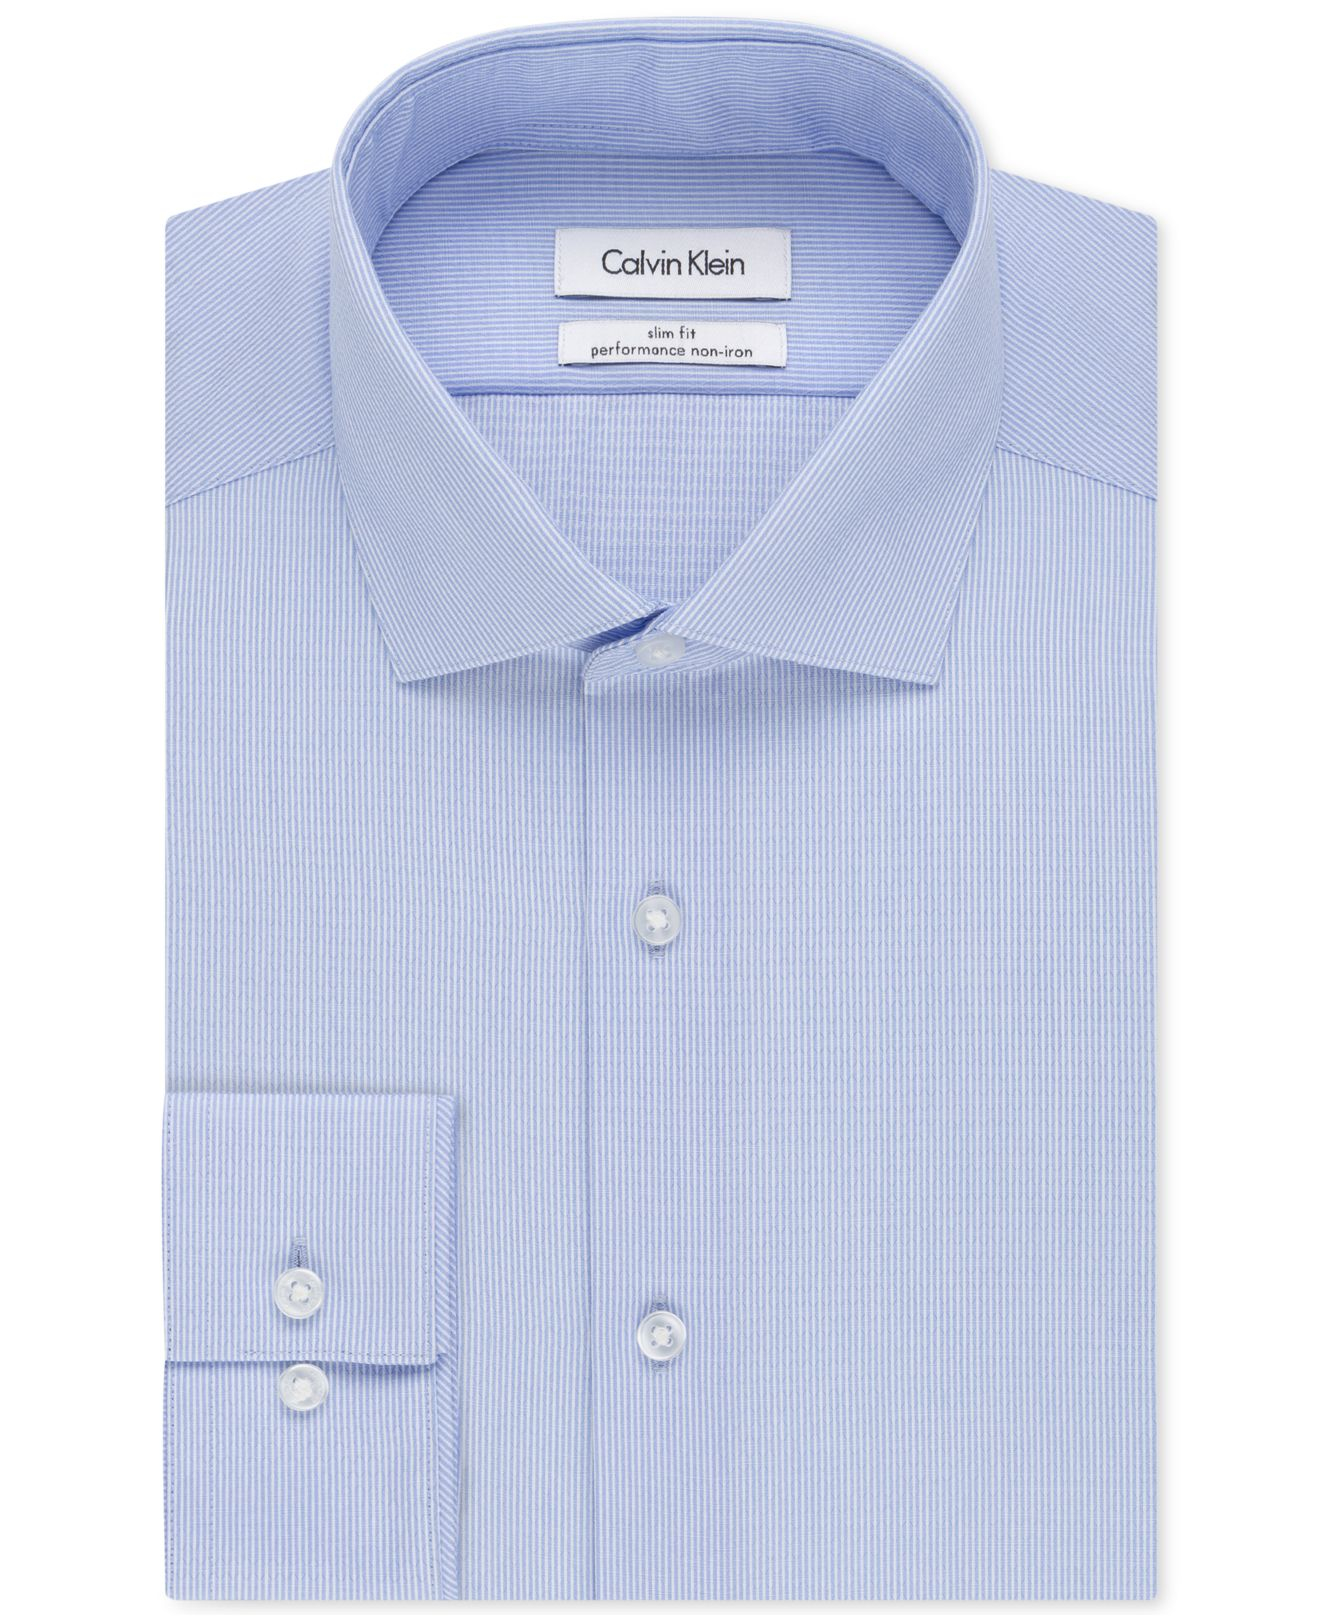 Calvin klein steel slim fit non iron performance fineline for Slim fit non iron dress shirts